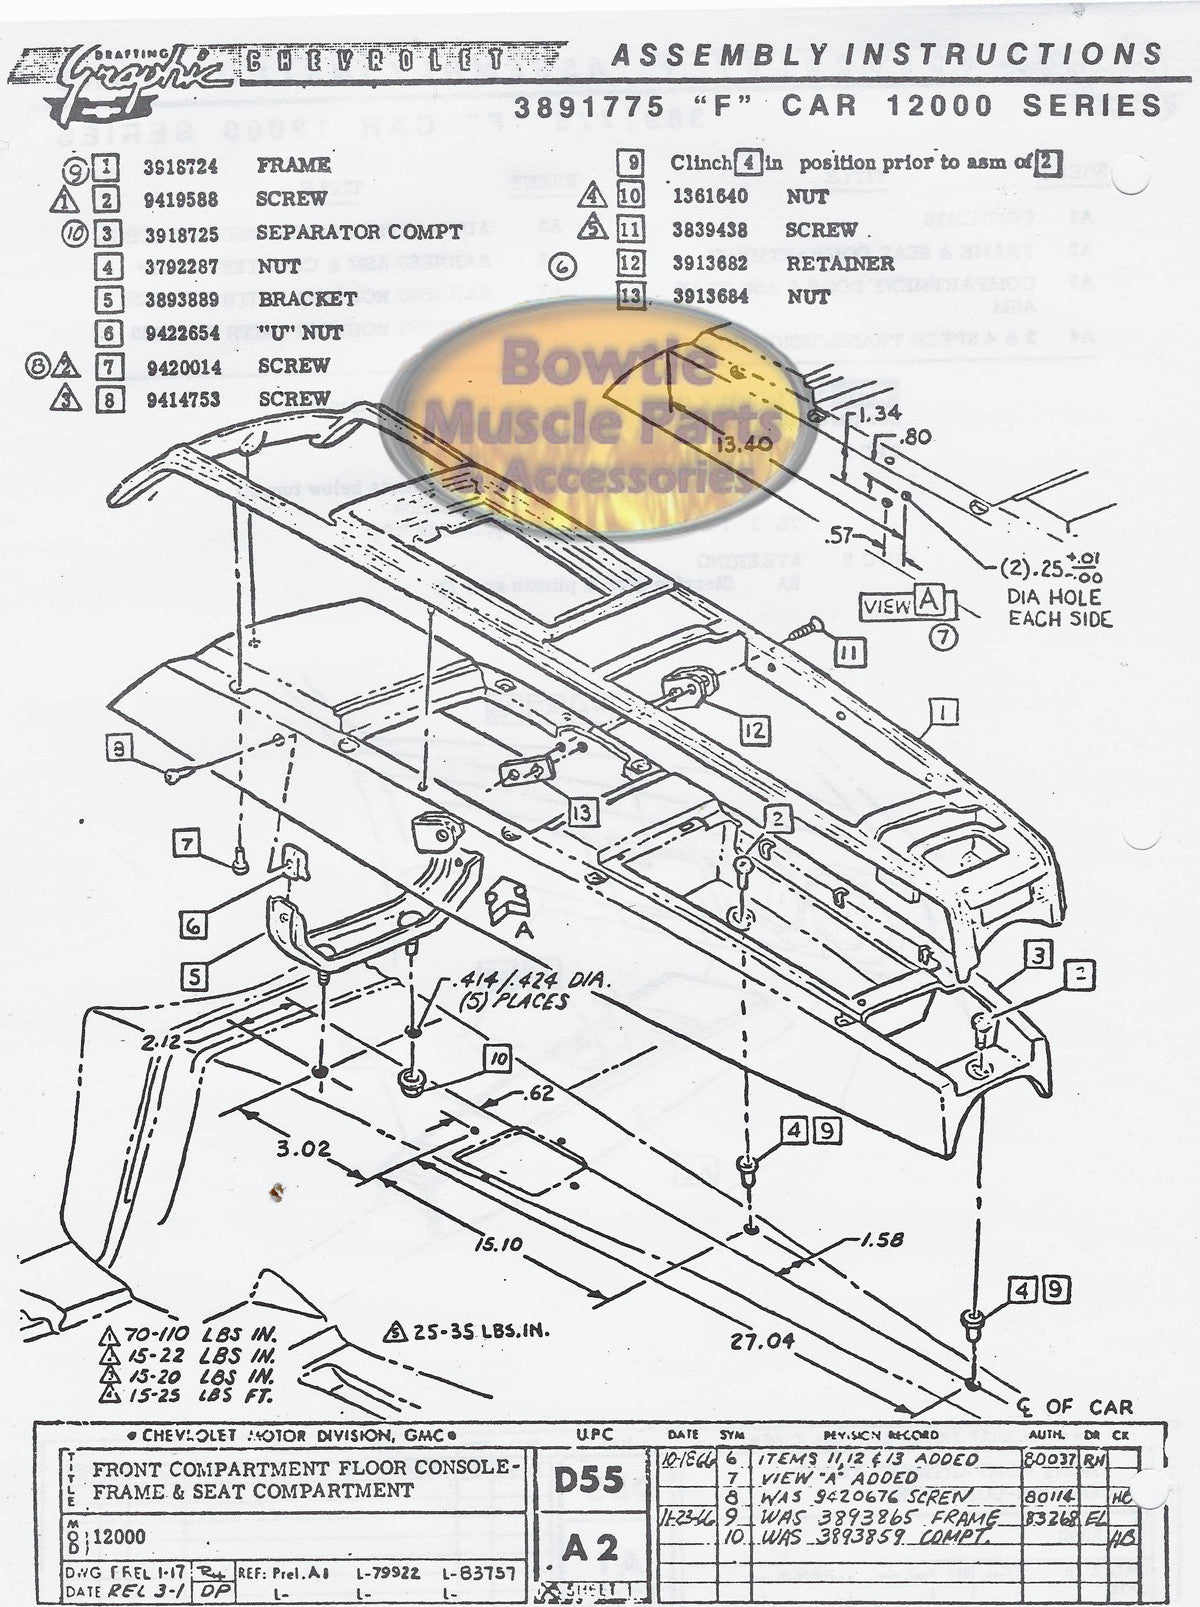 99 camaro z28 engine diagram